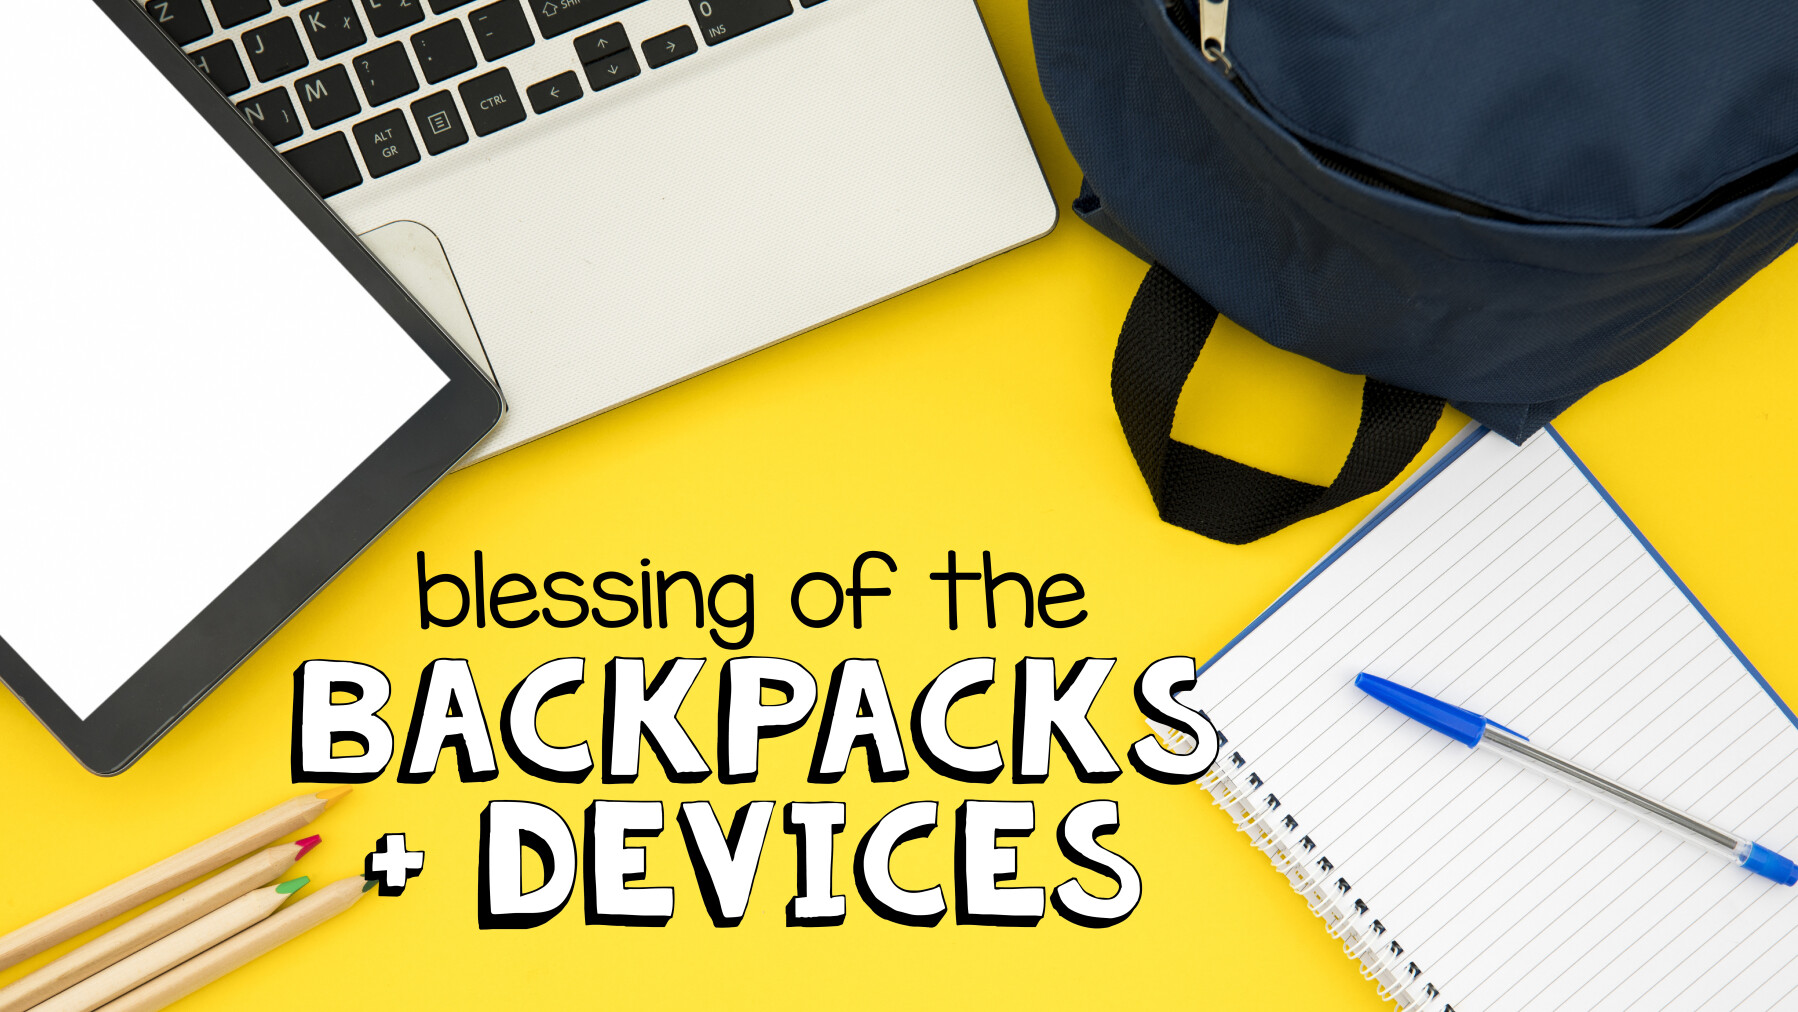 Blessing of the Backpacks and Devices